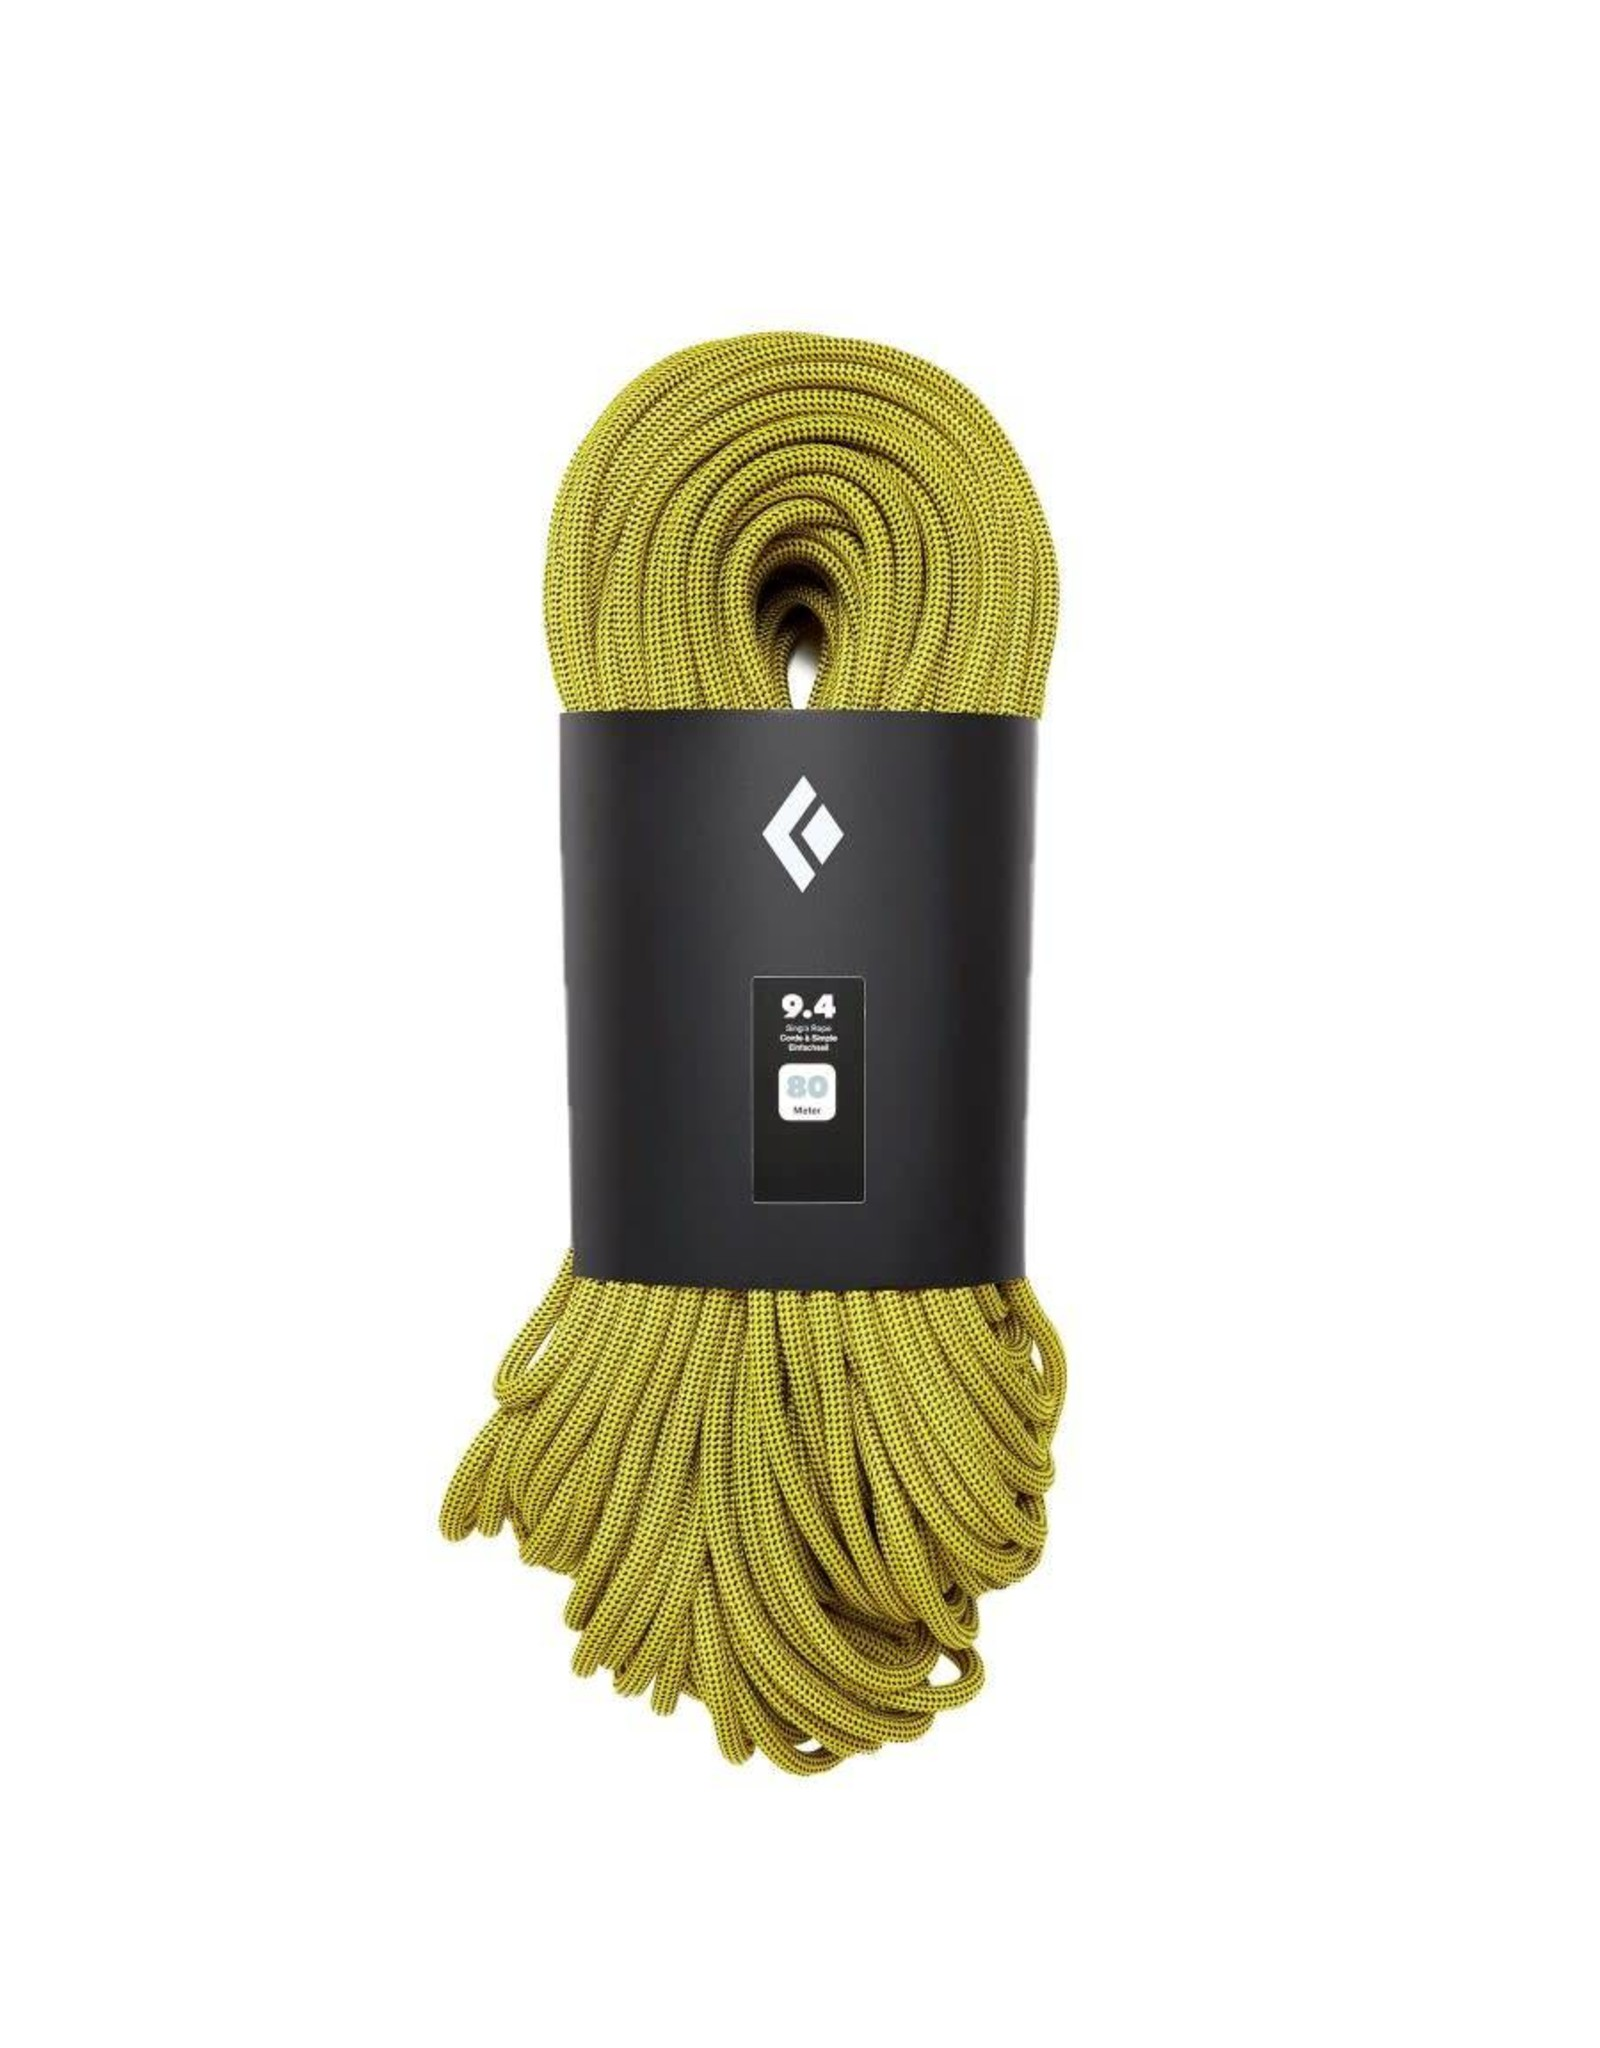 Black Diamond Black Diamond 9.4 Climbing Rope